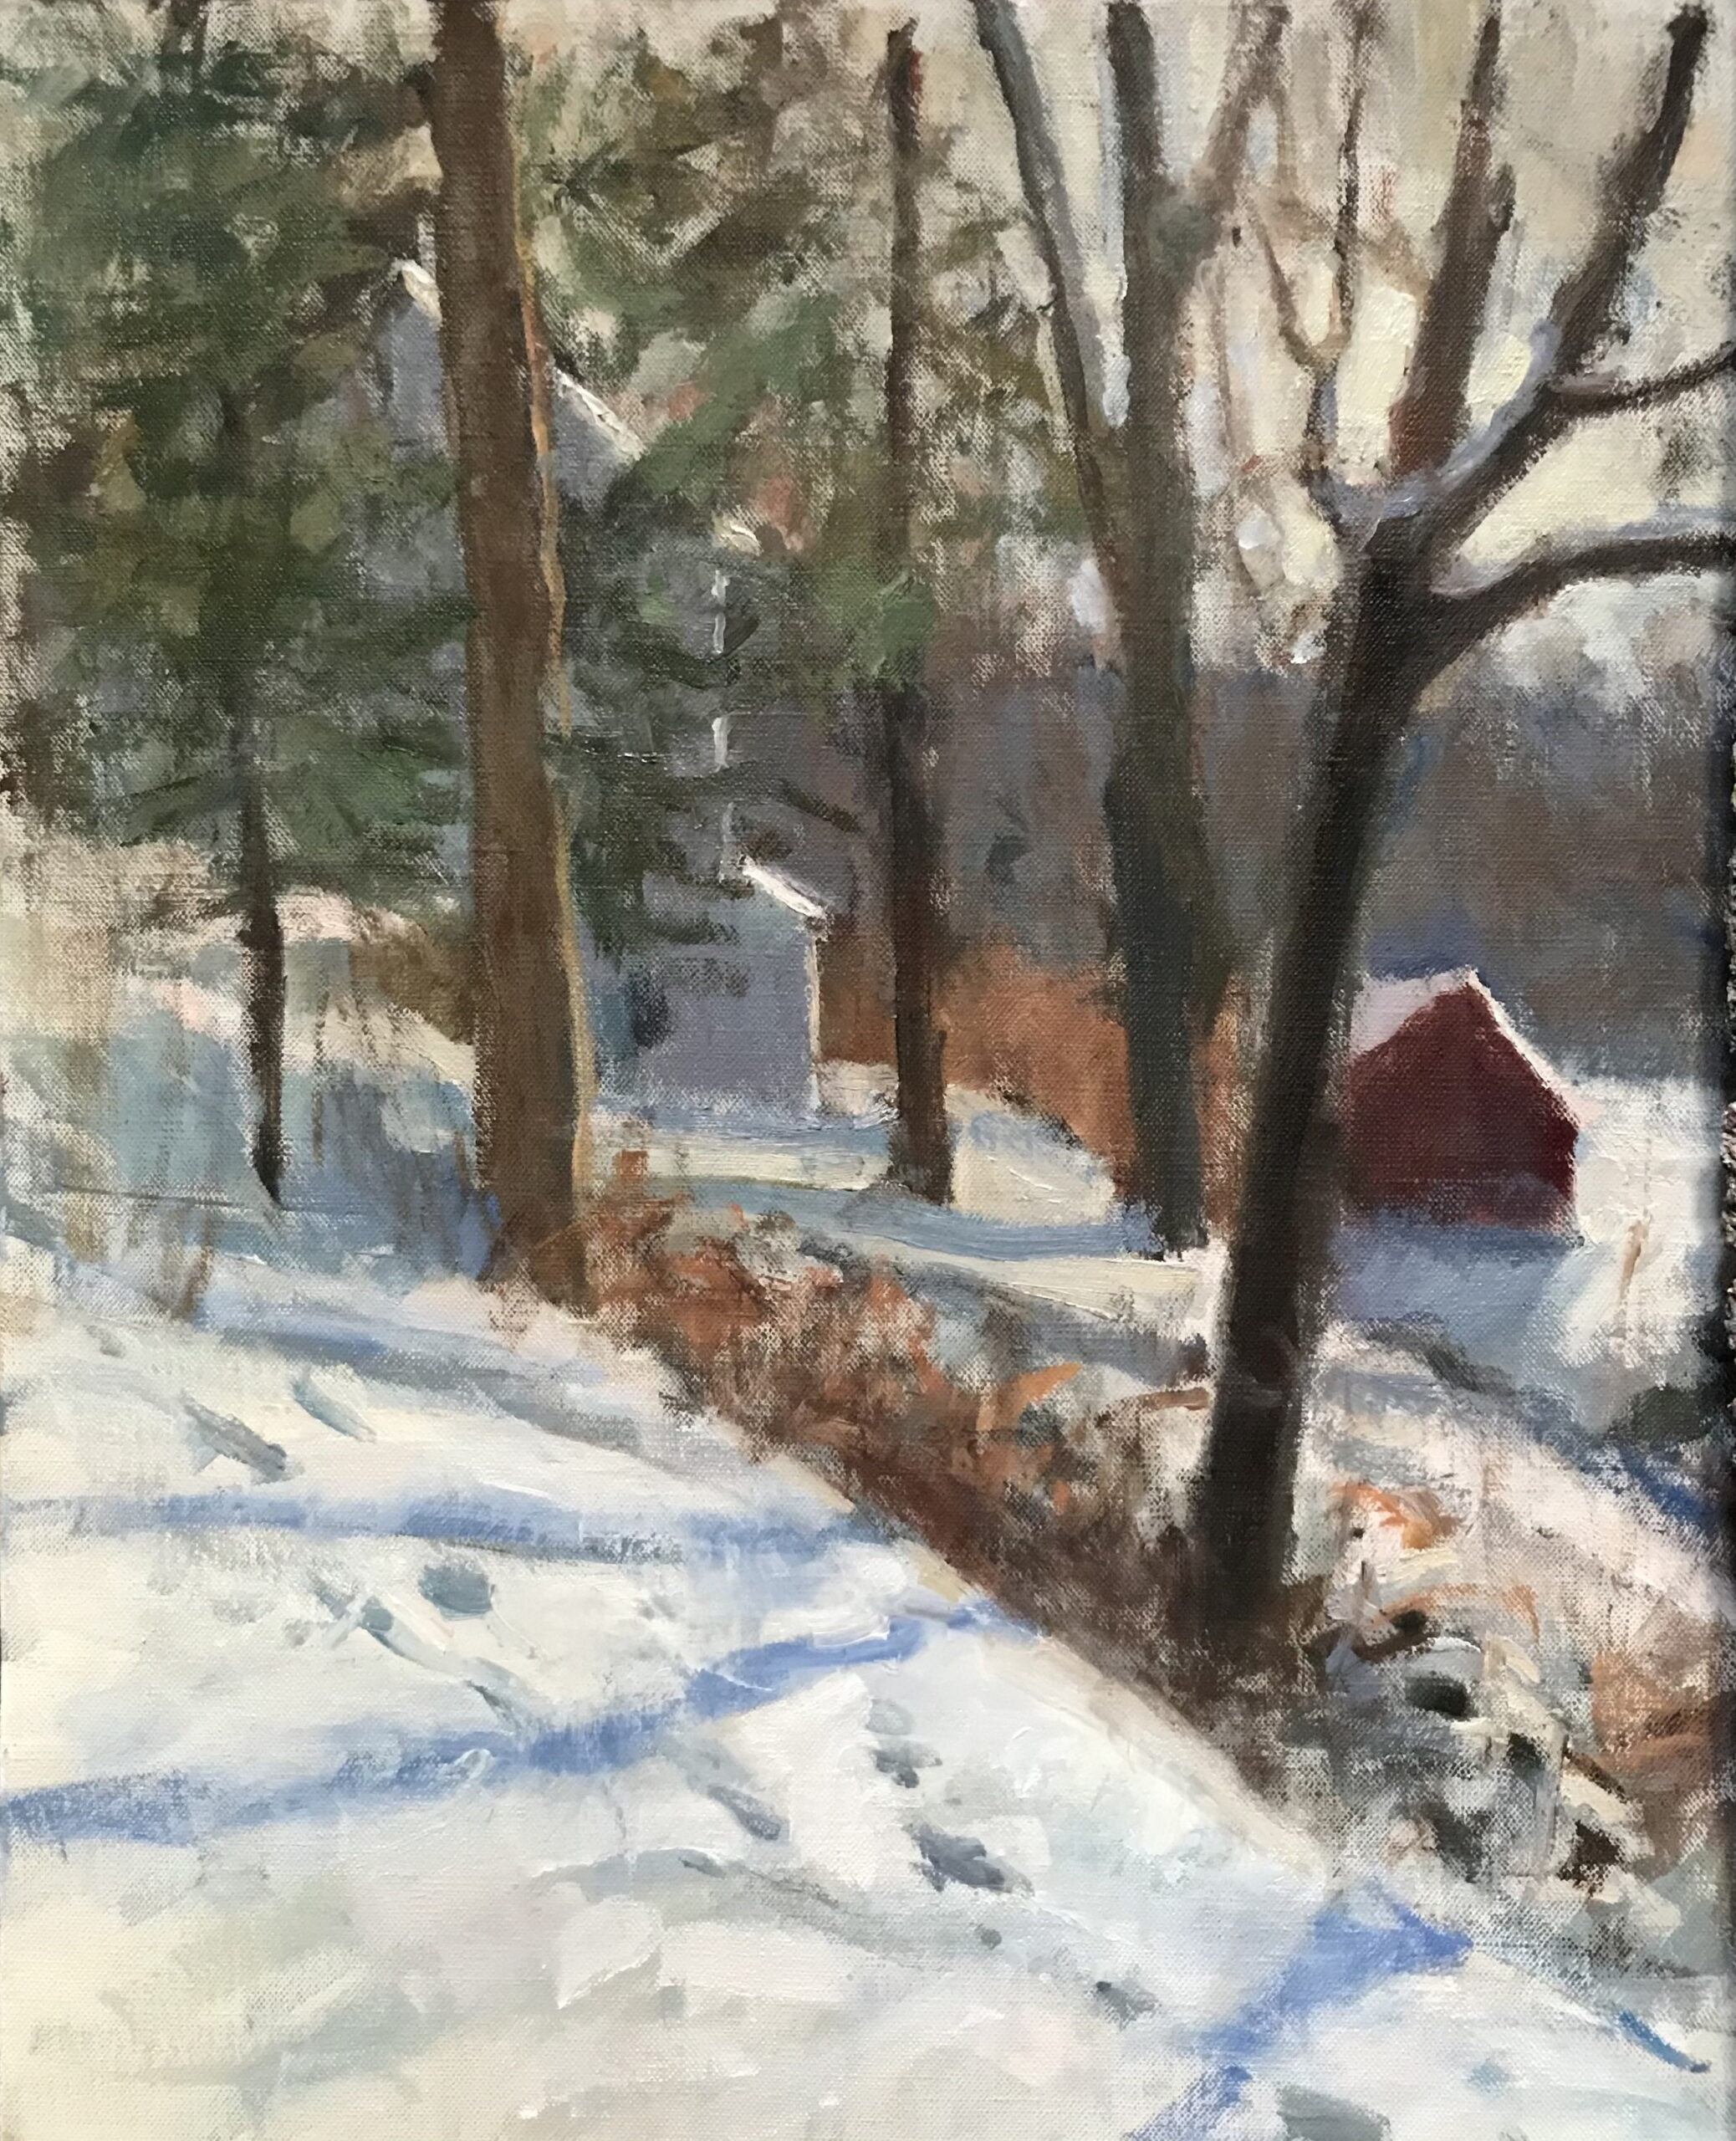 View from the Porch, Oil on Canvas, 20 x 16 Inches, by Susan Grisell, $750